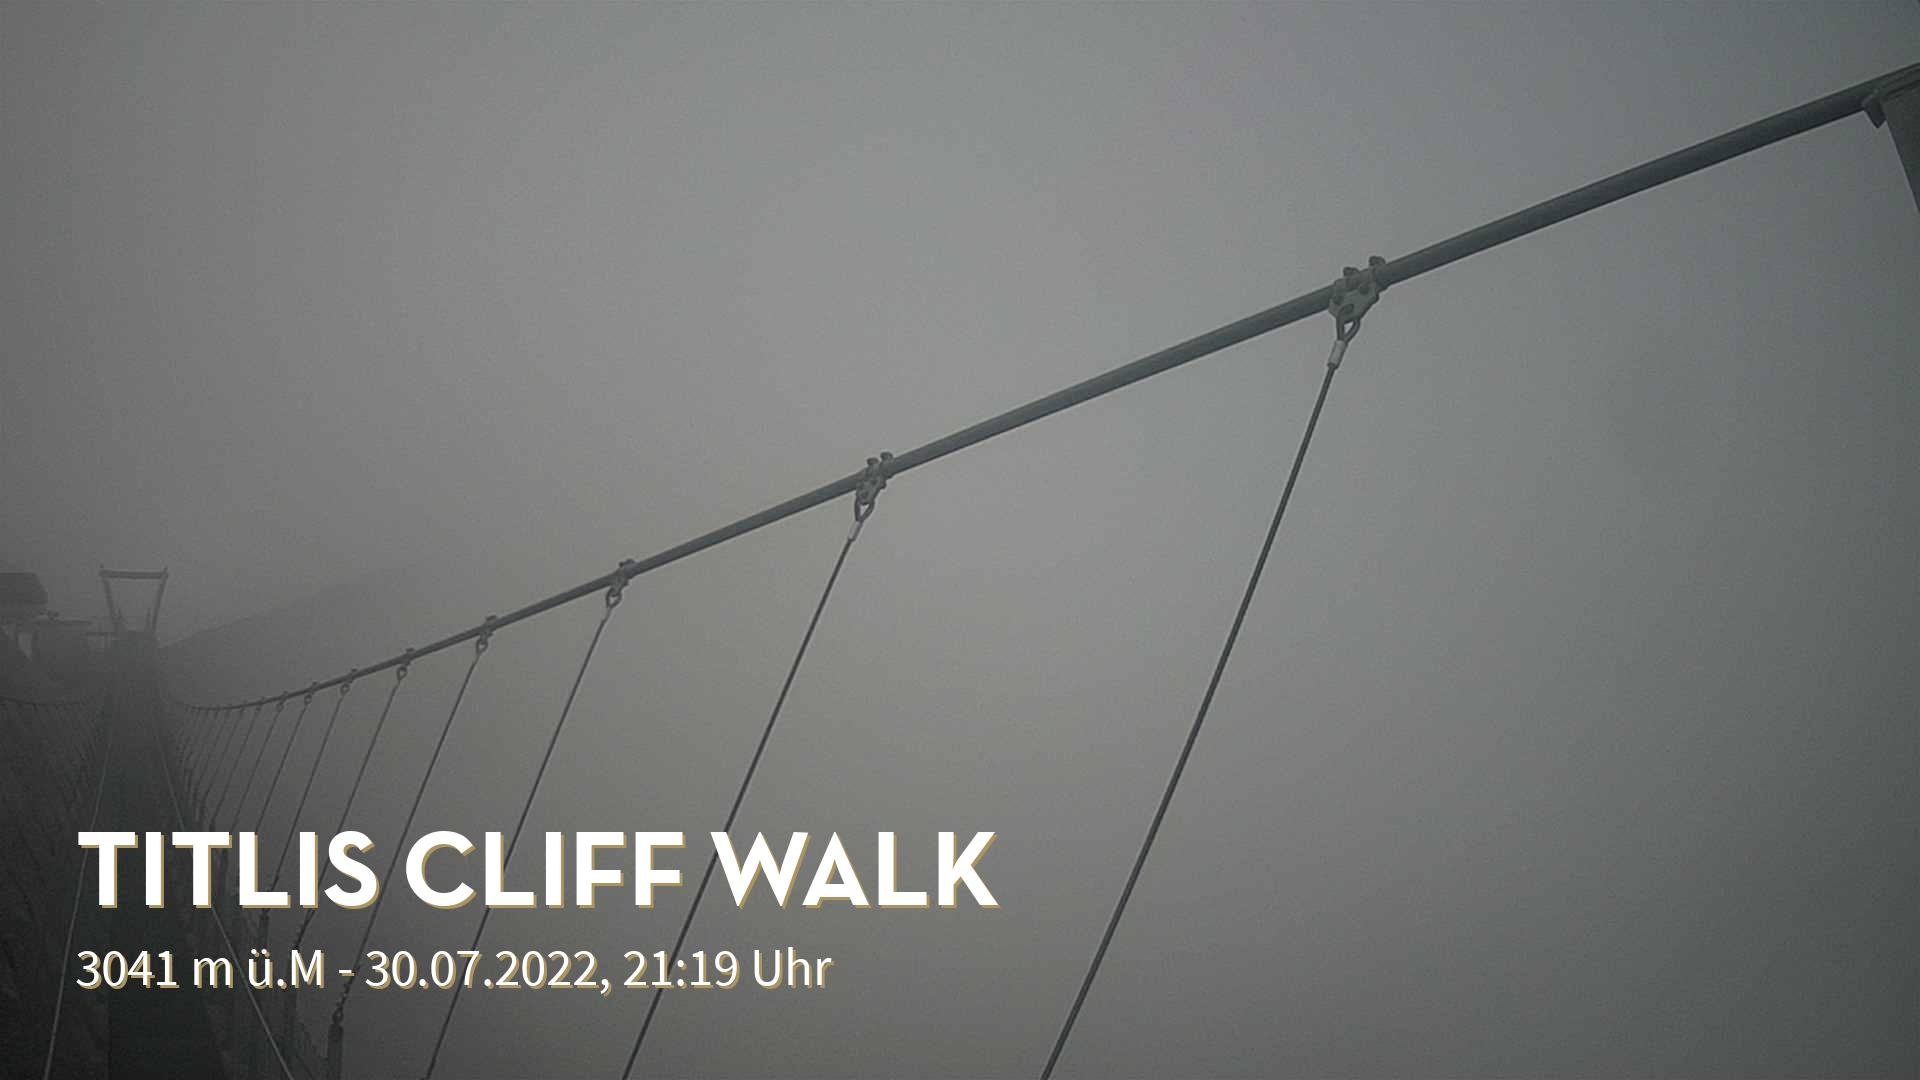 Engelberg Titlis Cliff Walk